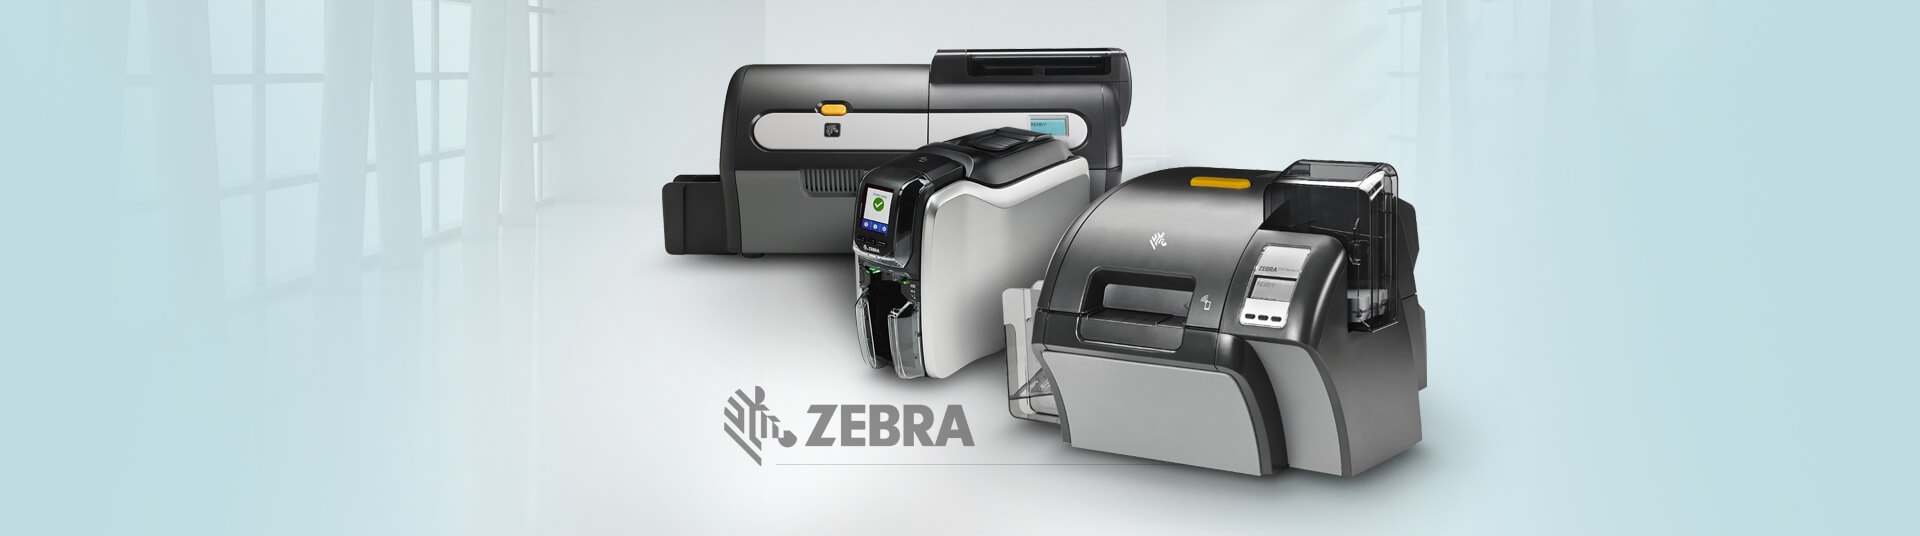 Zebra Photo ID Printers